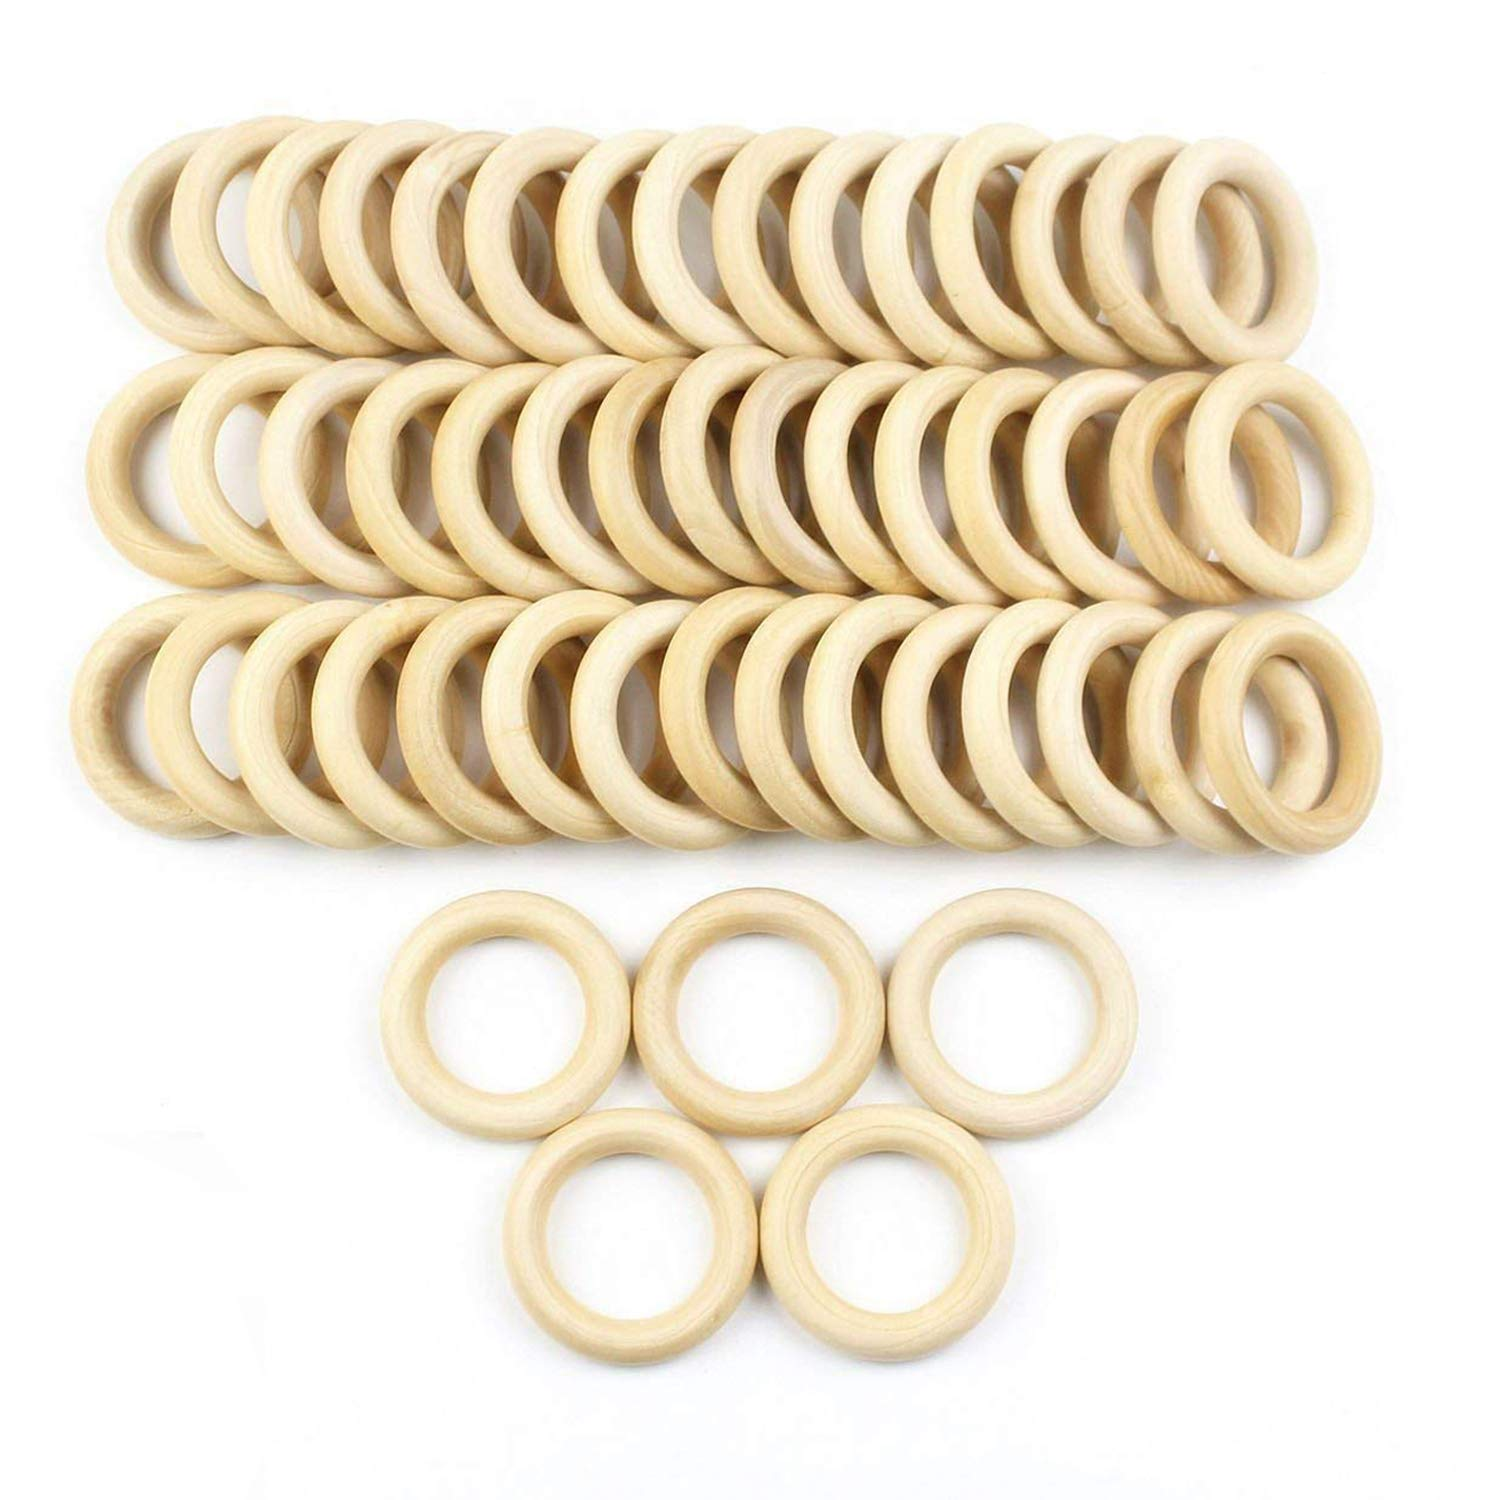 JPSOR 50 Pcs 2.2'' Natural Wood Rings Circles Unfinished Wood for DIY Pendant Connectors Jewelry Making